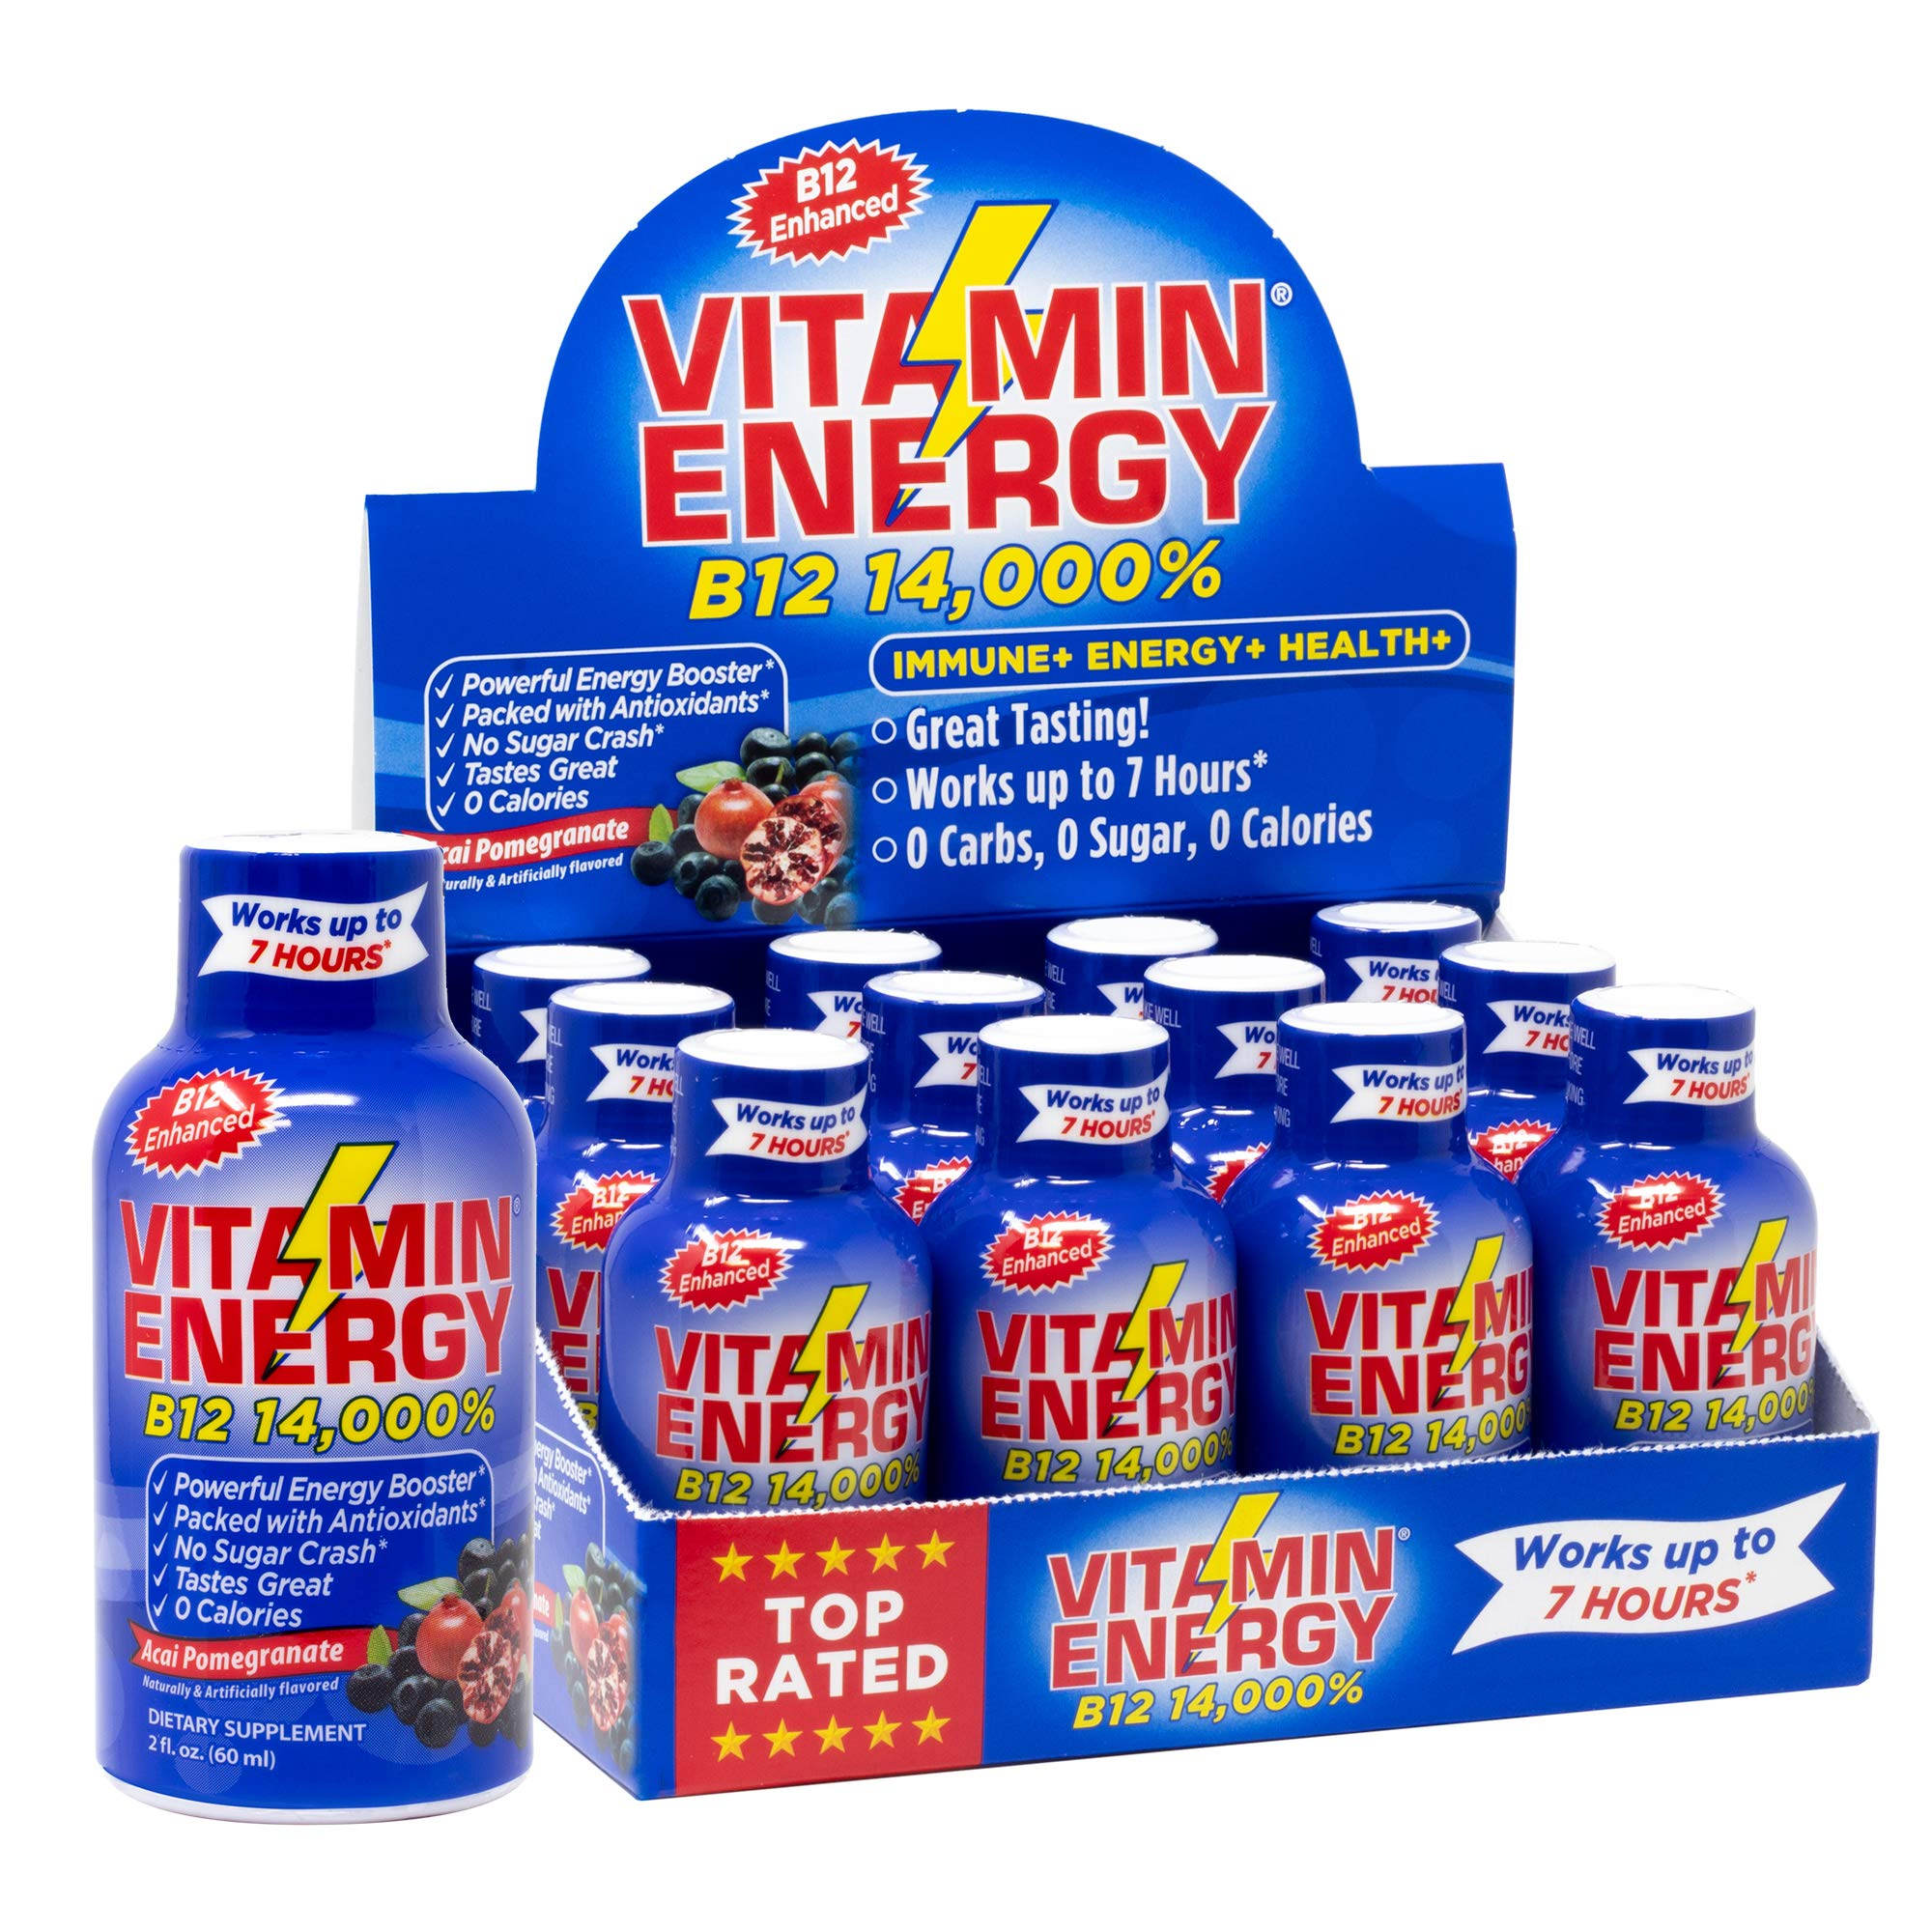 Vitamin Energy Shots - Acai Pomegranate | Vitamin B12 Enhanced | Up to 7 Hours of Energy | More Energy Than 1 Cup of Coffee | 0 Calories, 0 Sugar, 0 Carbs (12 Pack)